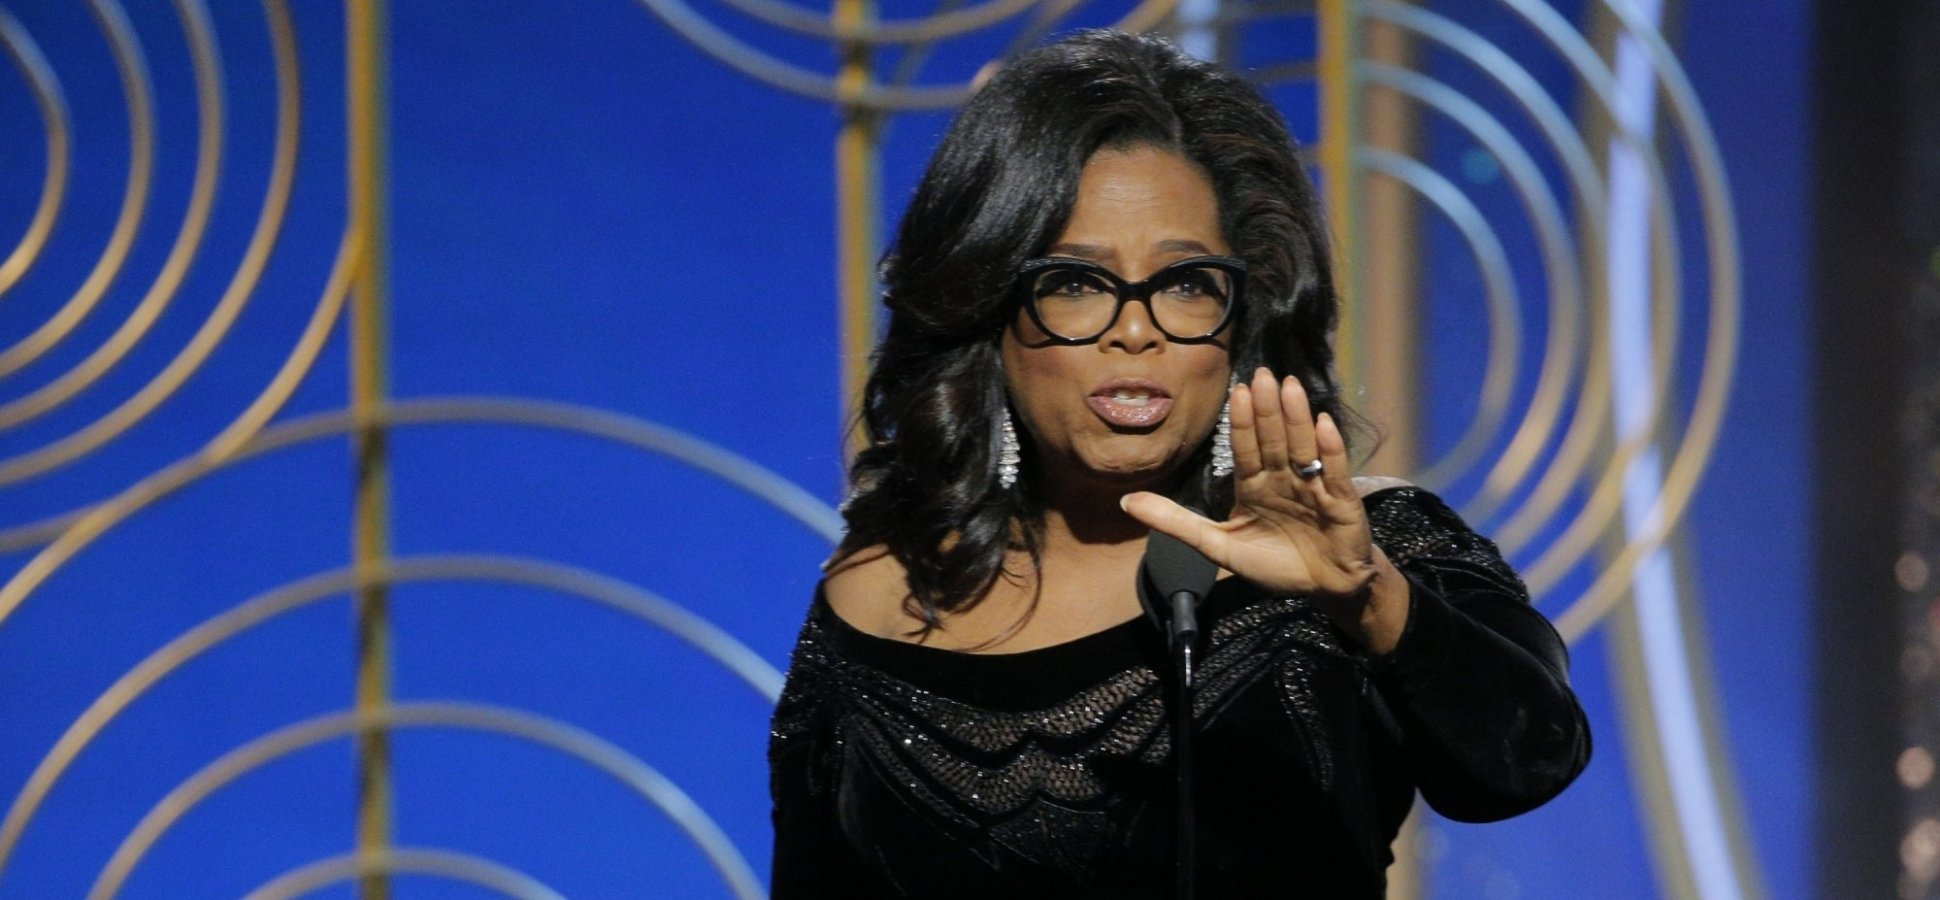 Oprah Winfrey Nailed Every Public Speaking Lesson You Could Learn in Her Golden Globes Speech